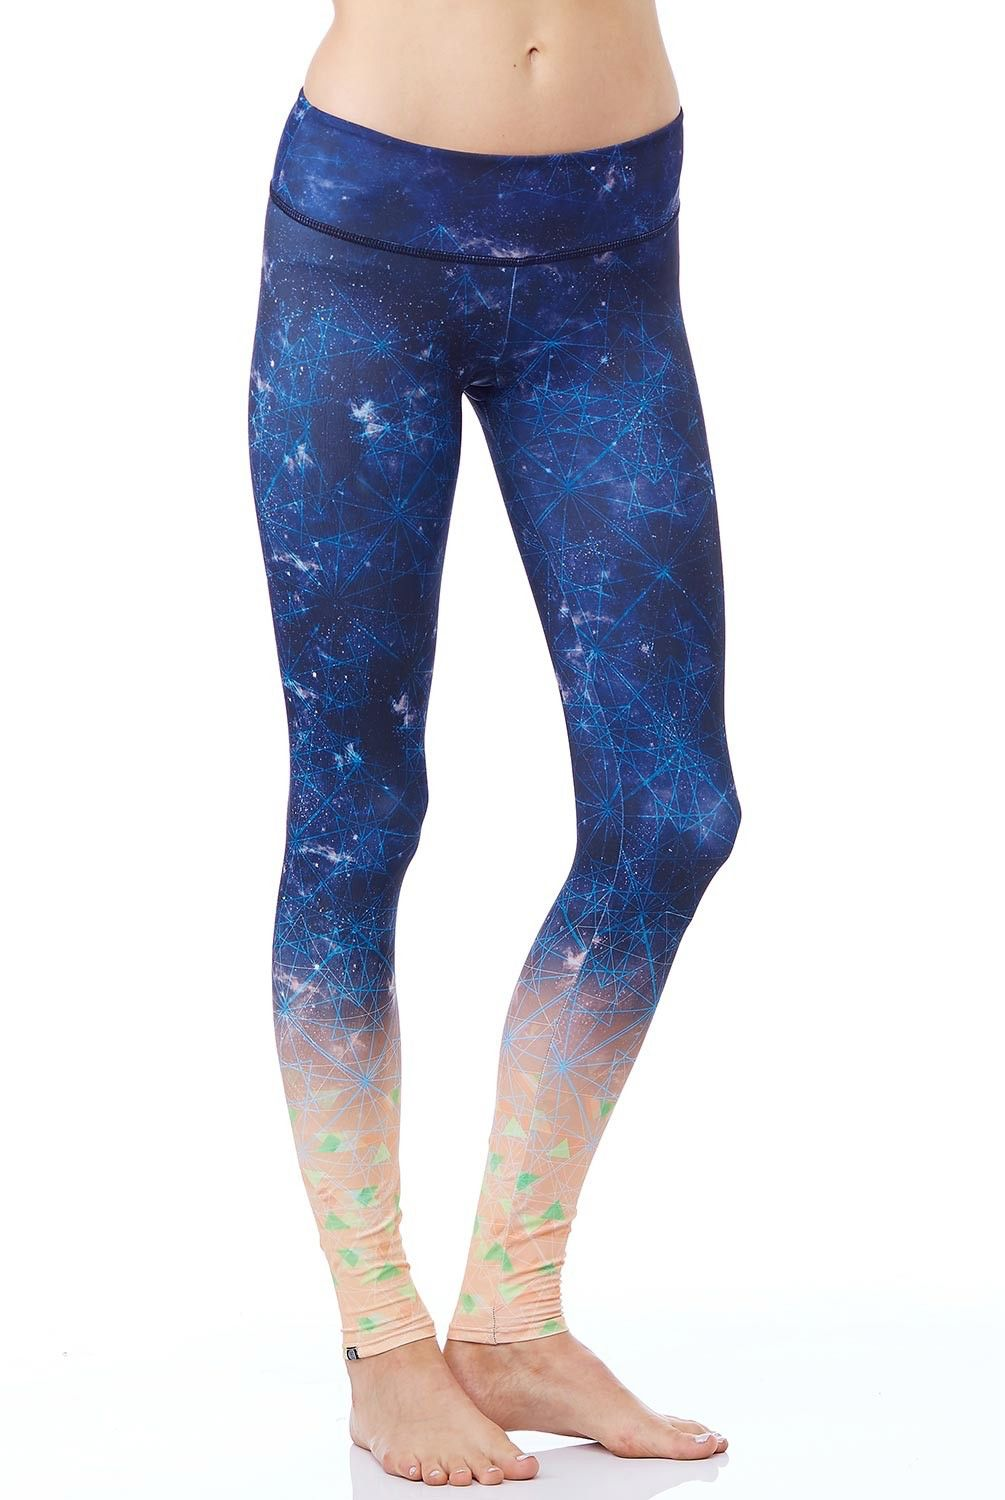 4f625a4f36047 Onzie Time Traveler Graphic Legging is perfect for hot yoga. Featuring a  cool celestial pattern and ombre leg effect. Available at evolvefitwear.com